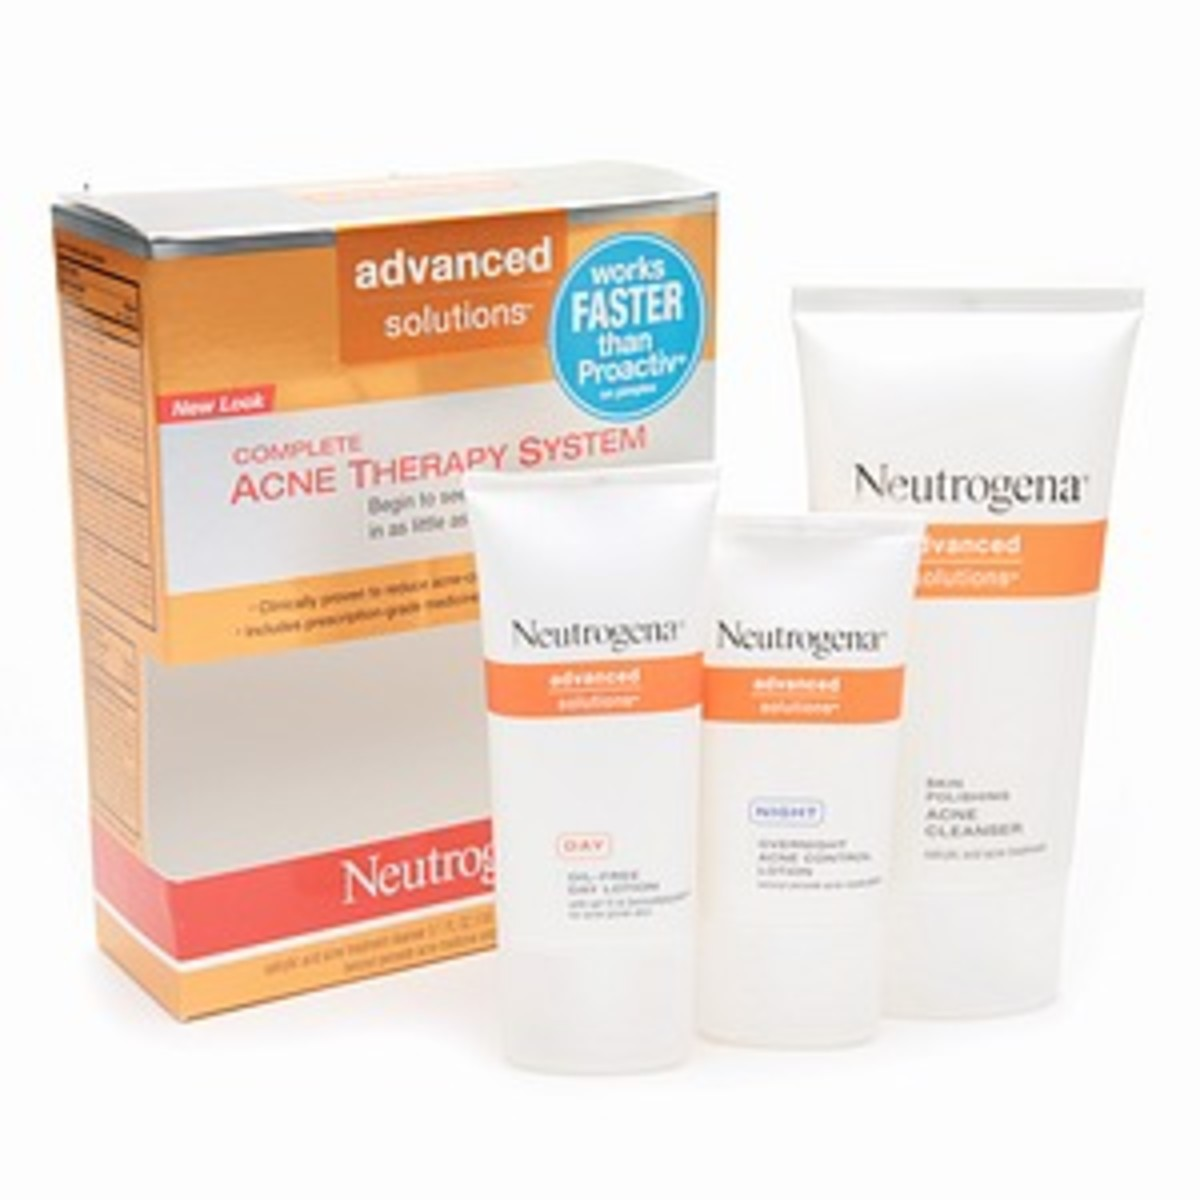 Neutrogena Advanced Solutions Acne Therapy System